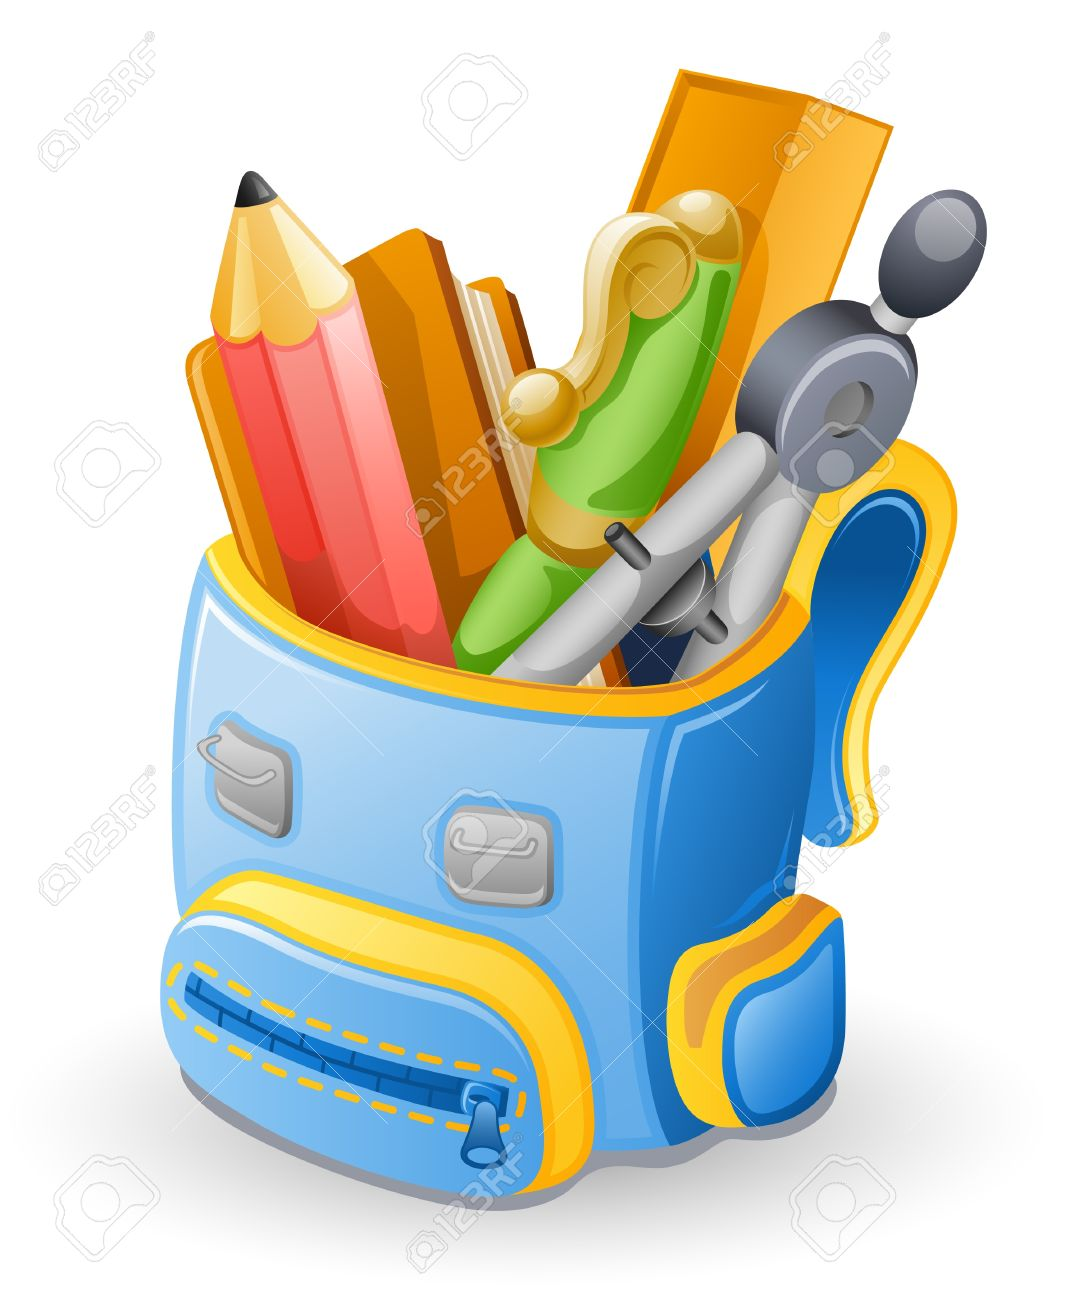 School bag: pencil, book, pen, ruler, compasses . Isolated on white background. Stock Vector - 10307650